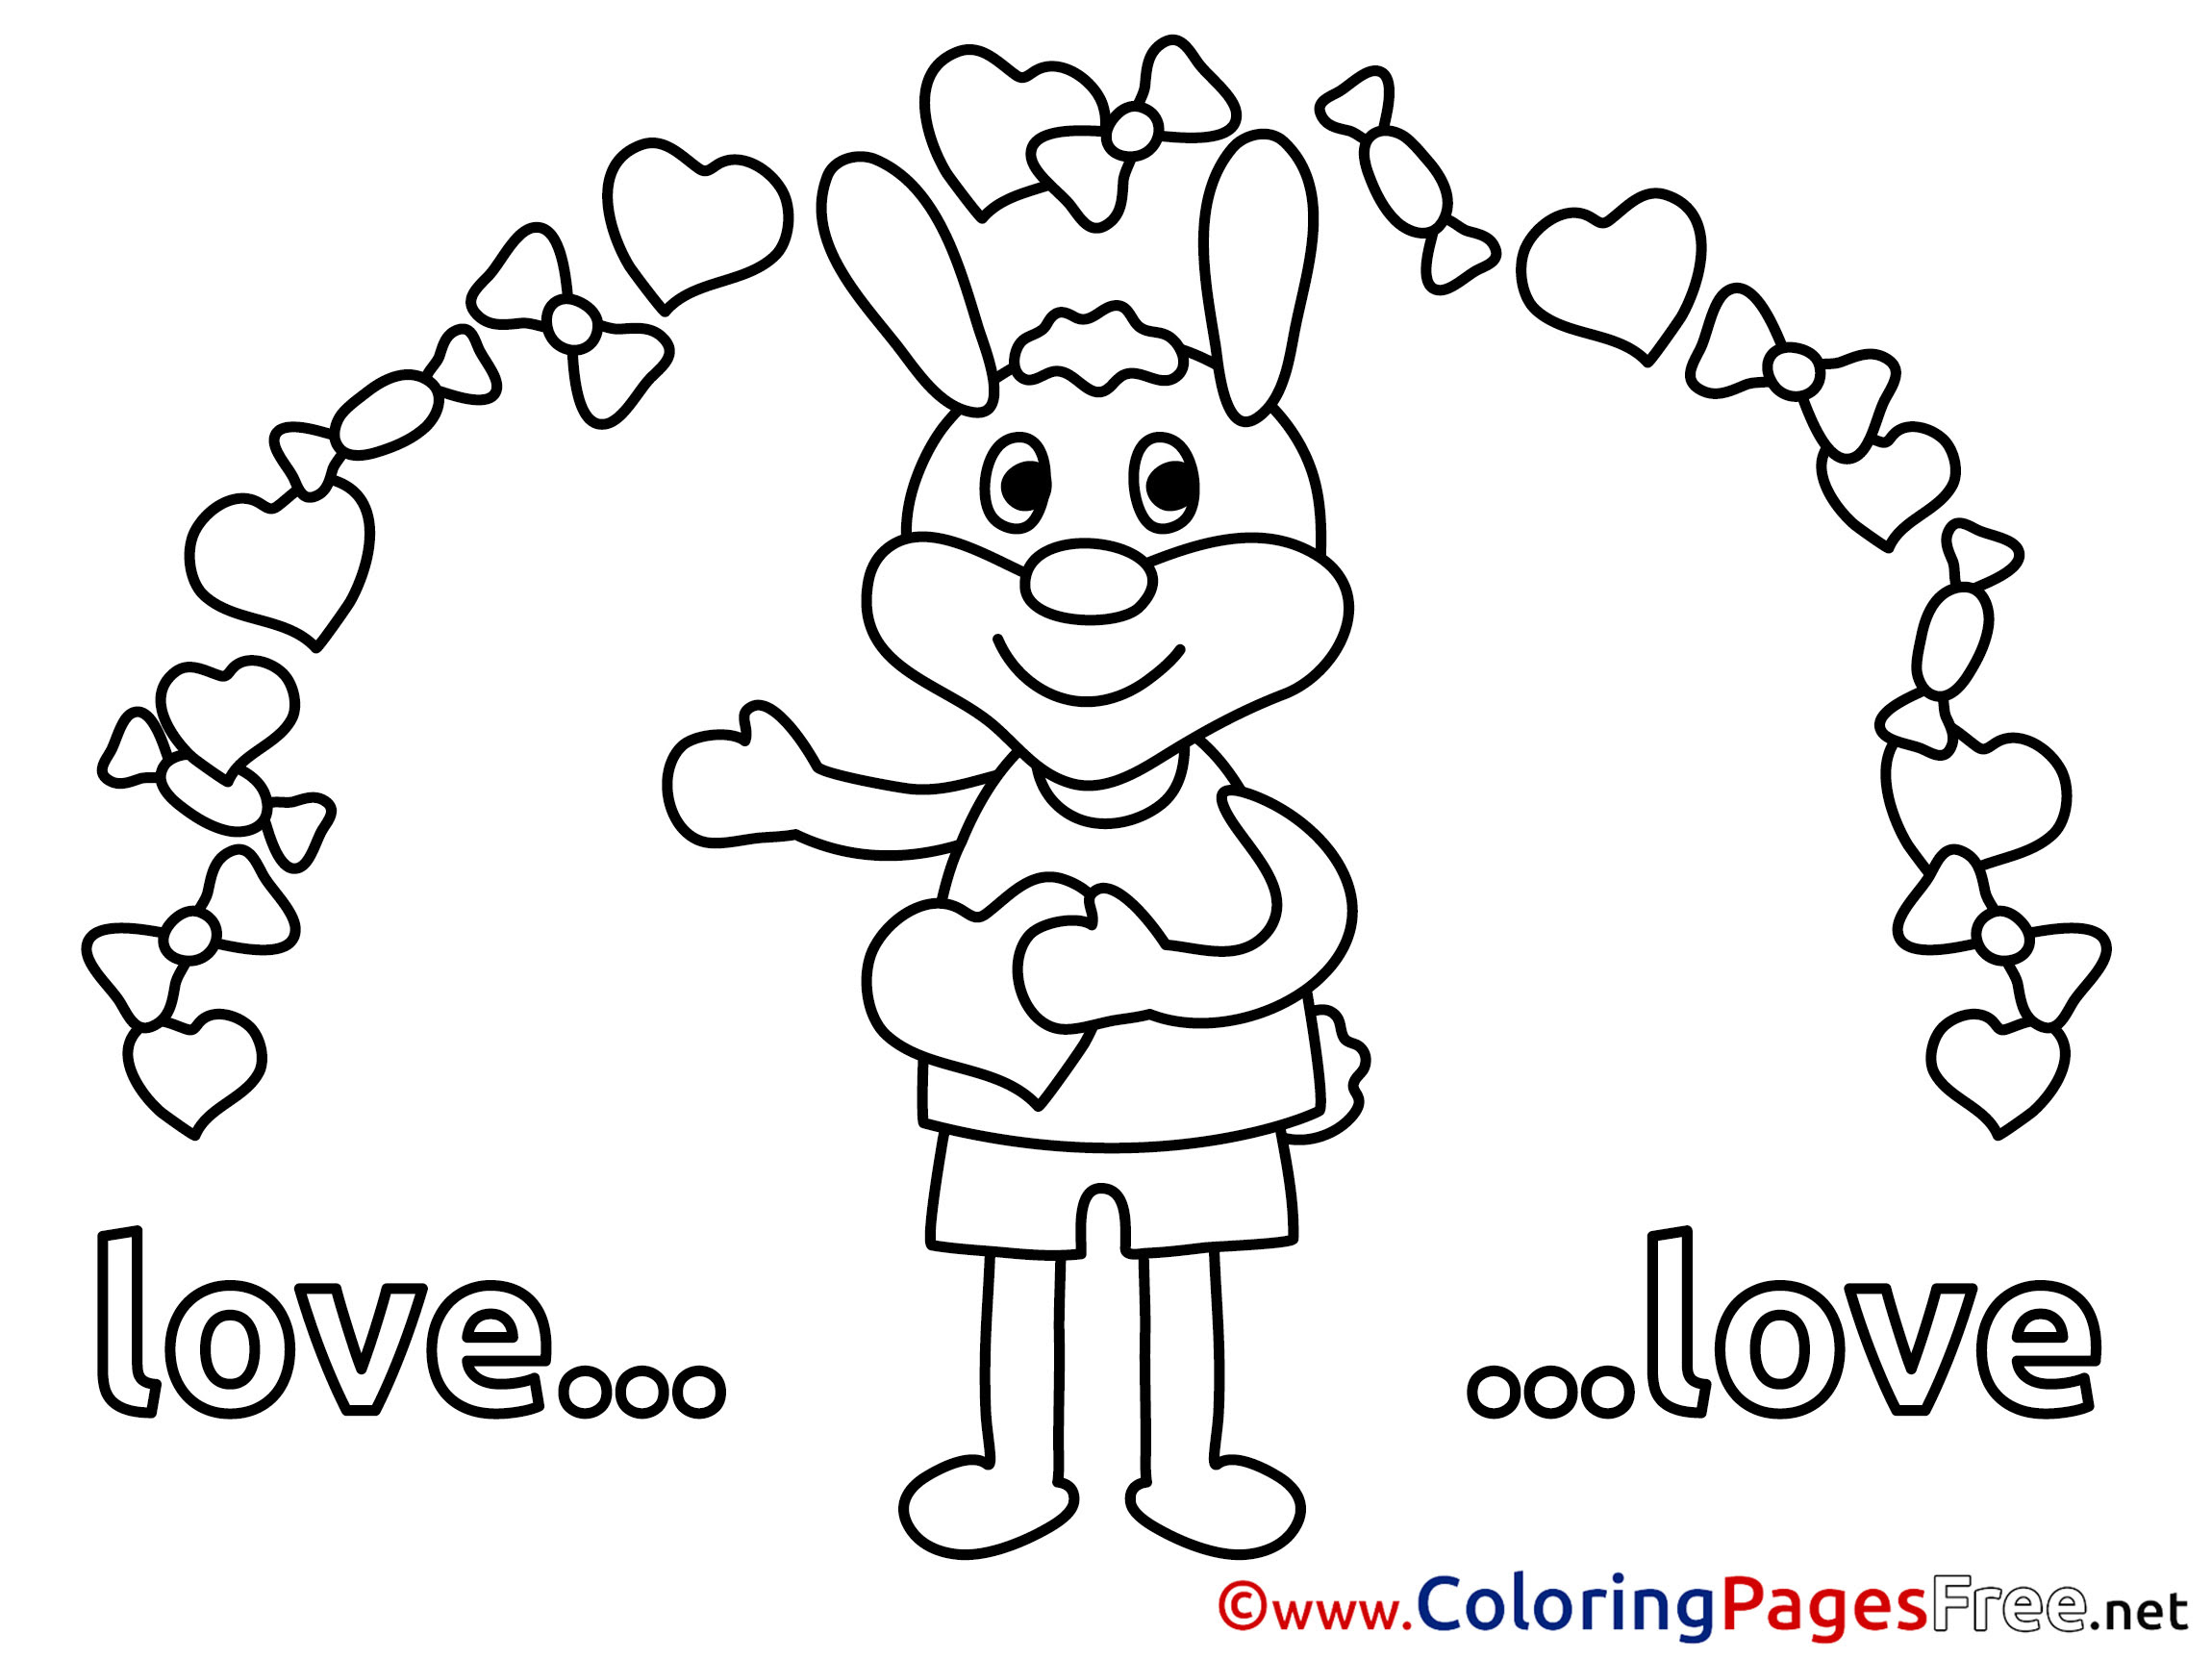 Children Valentine's Day Rabbit Colouring Page